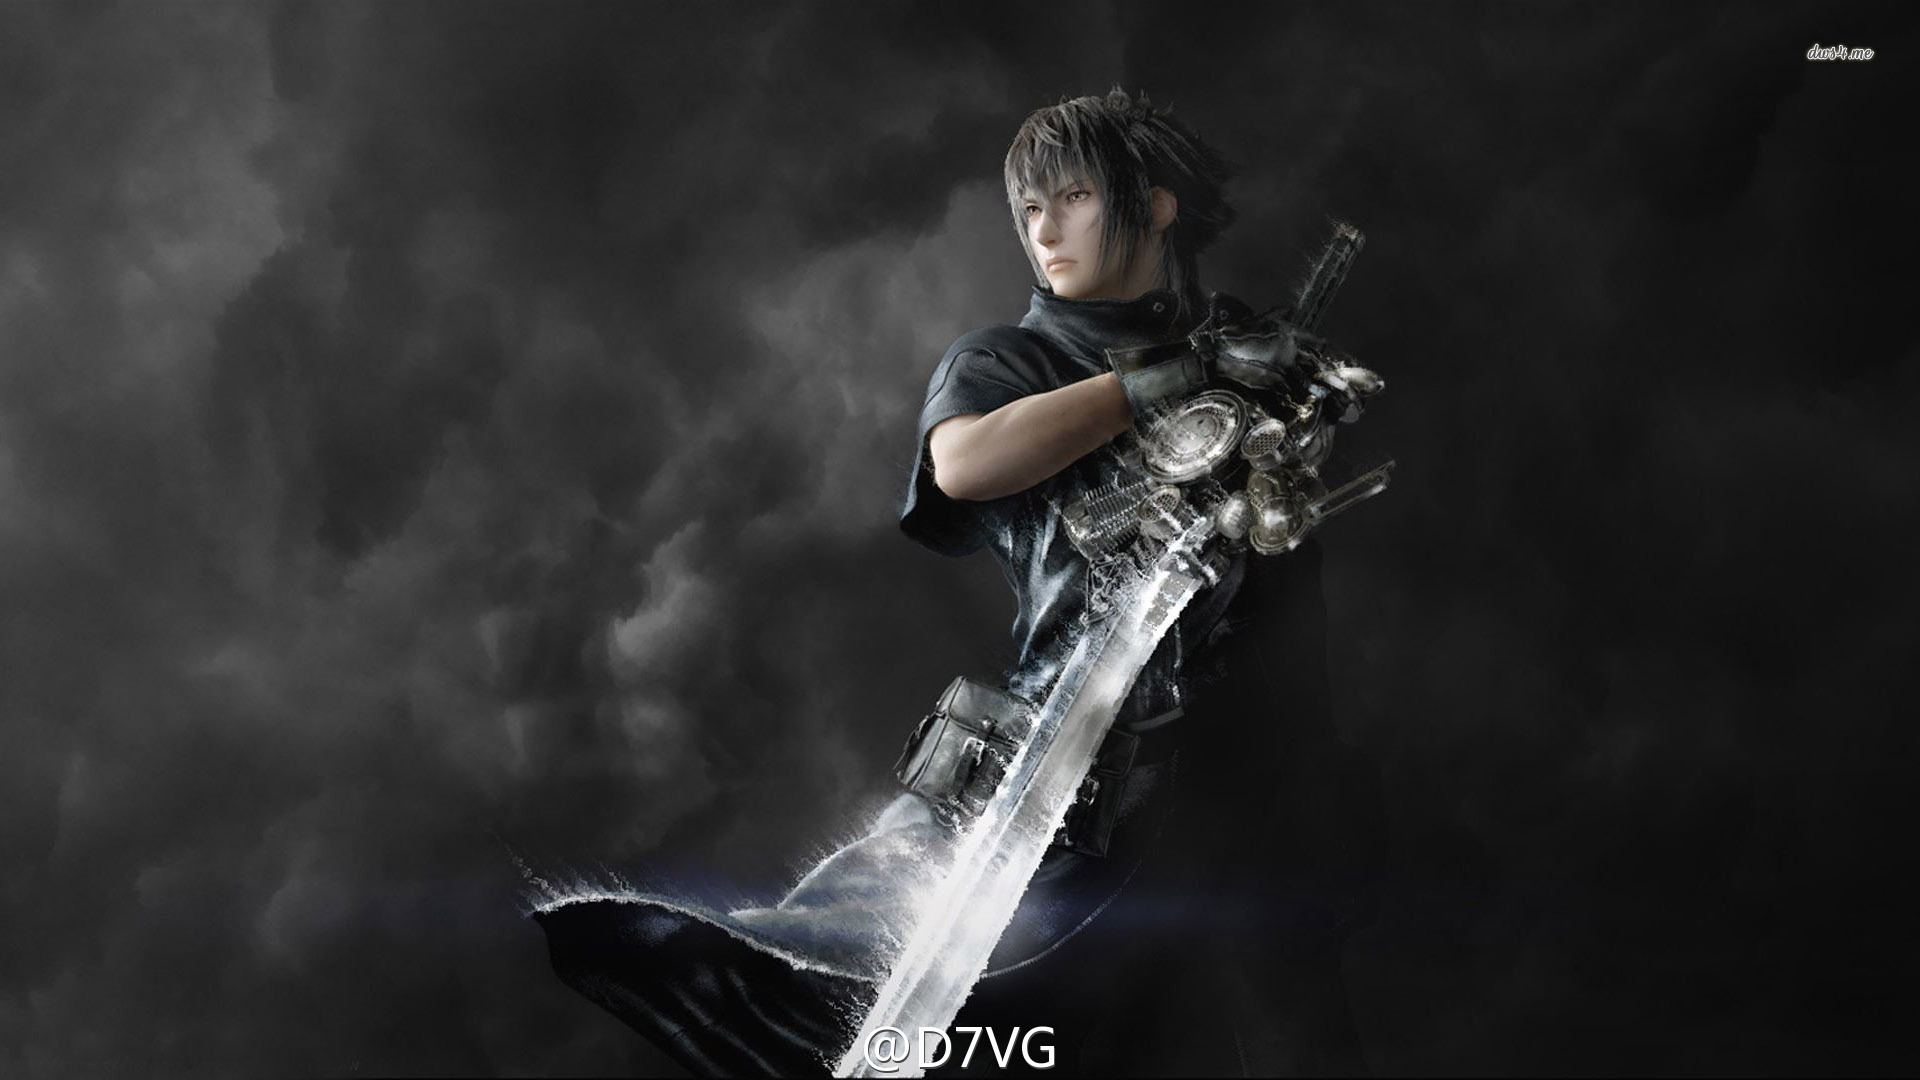 Free Download Final Fantasy Versus Xiii 2006 1920x1080 For Your